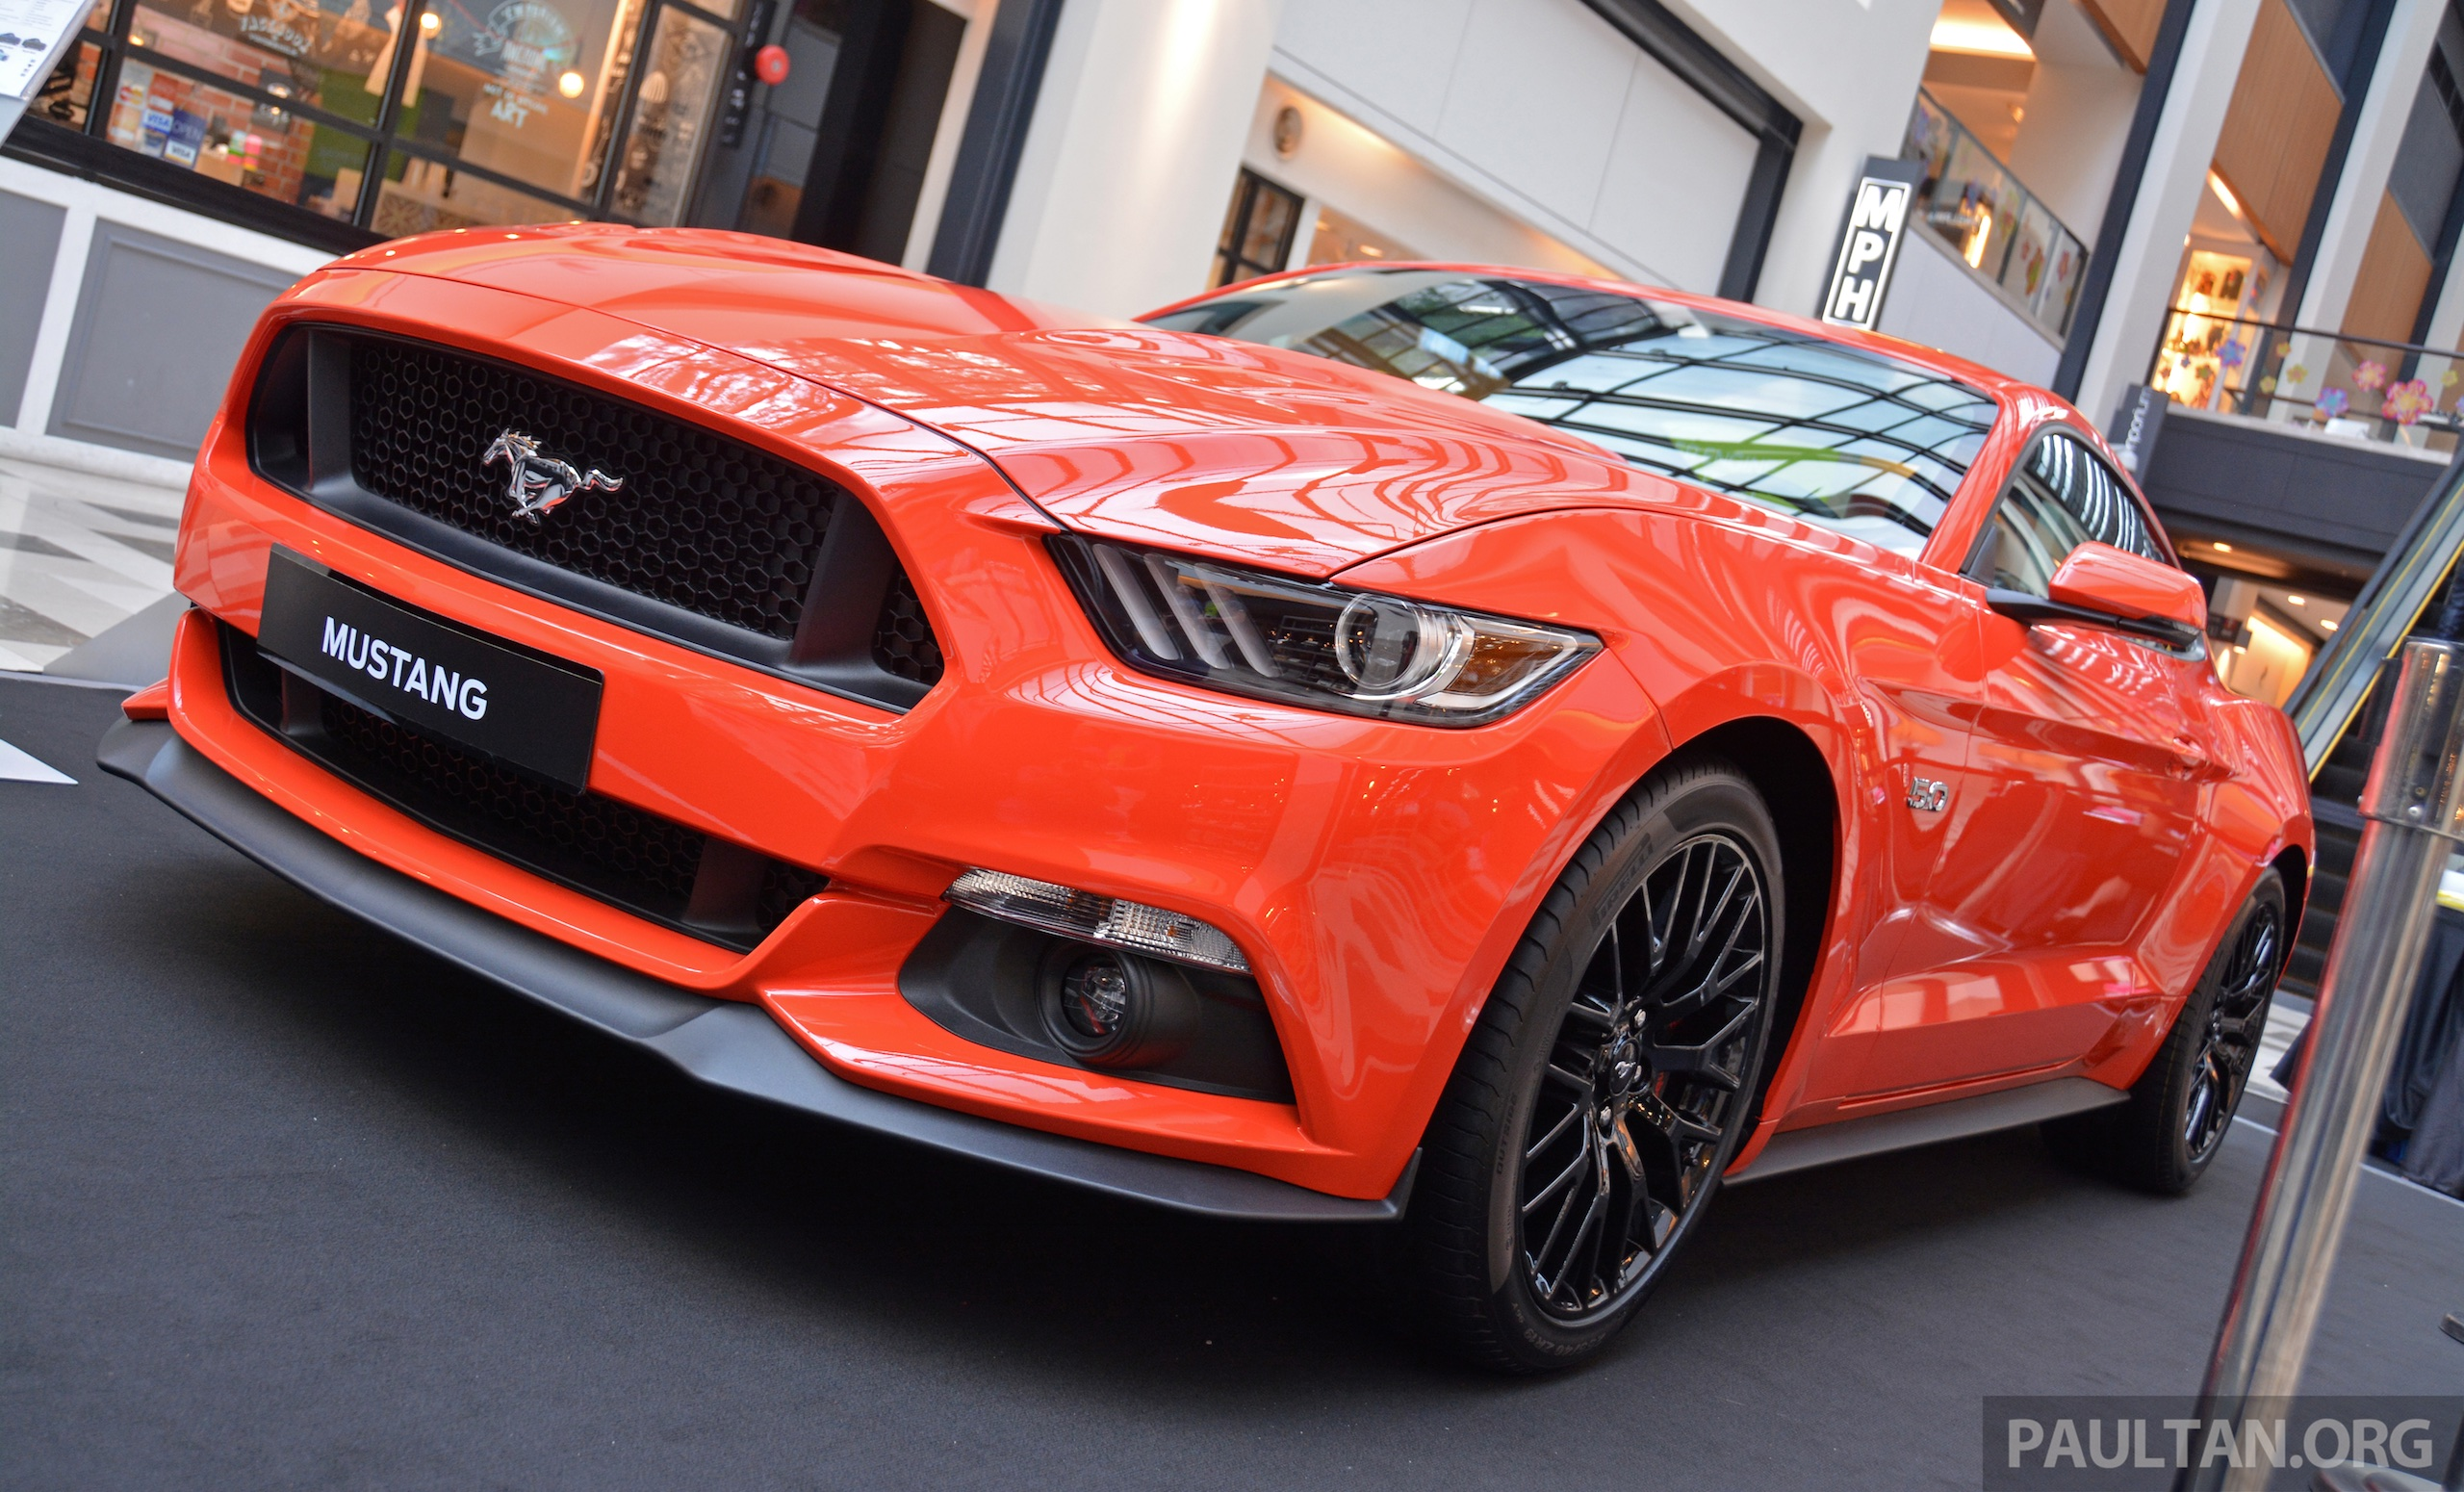 Gallery ford mustang 5 0 gt on display at publika image 317628